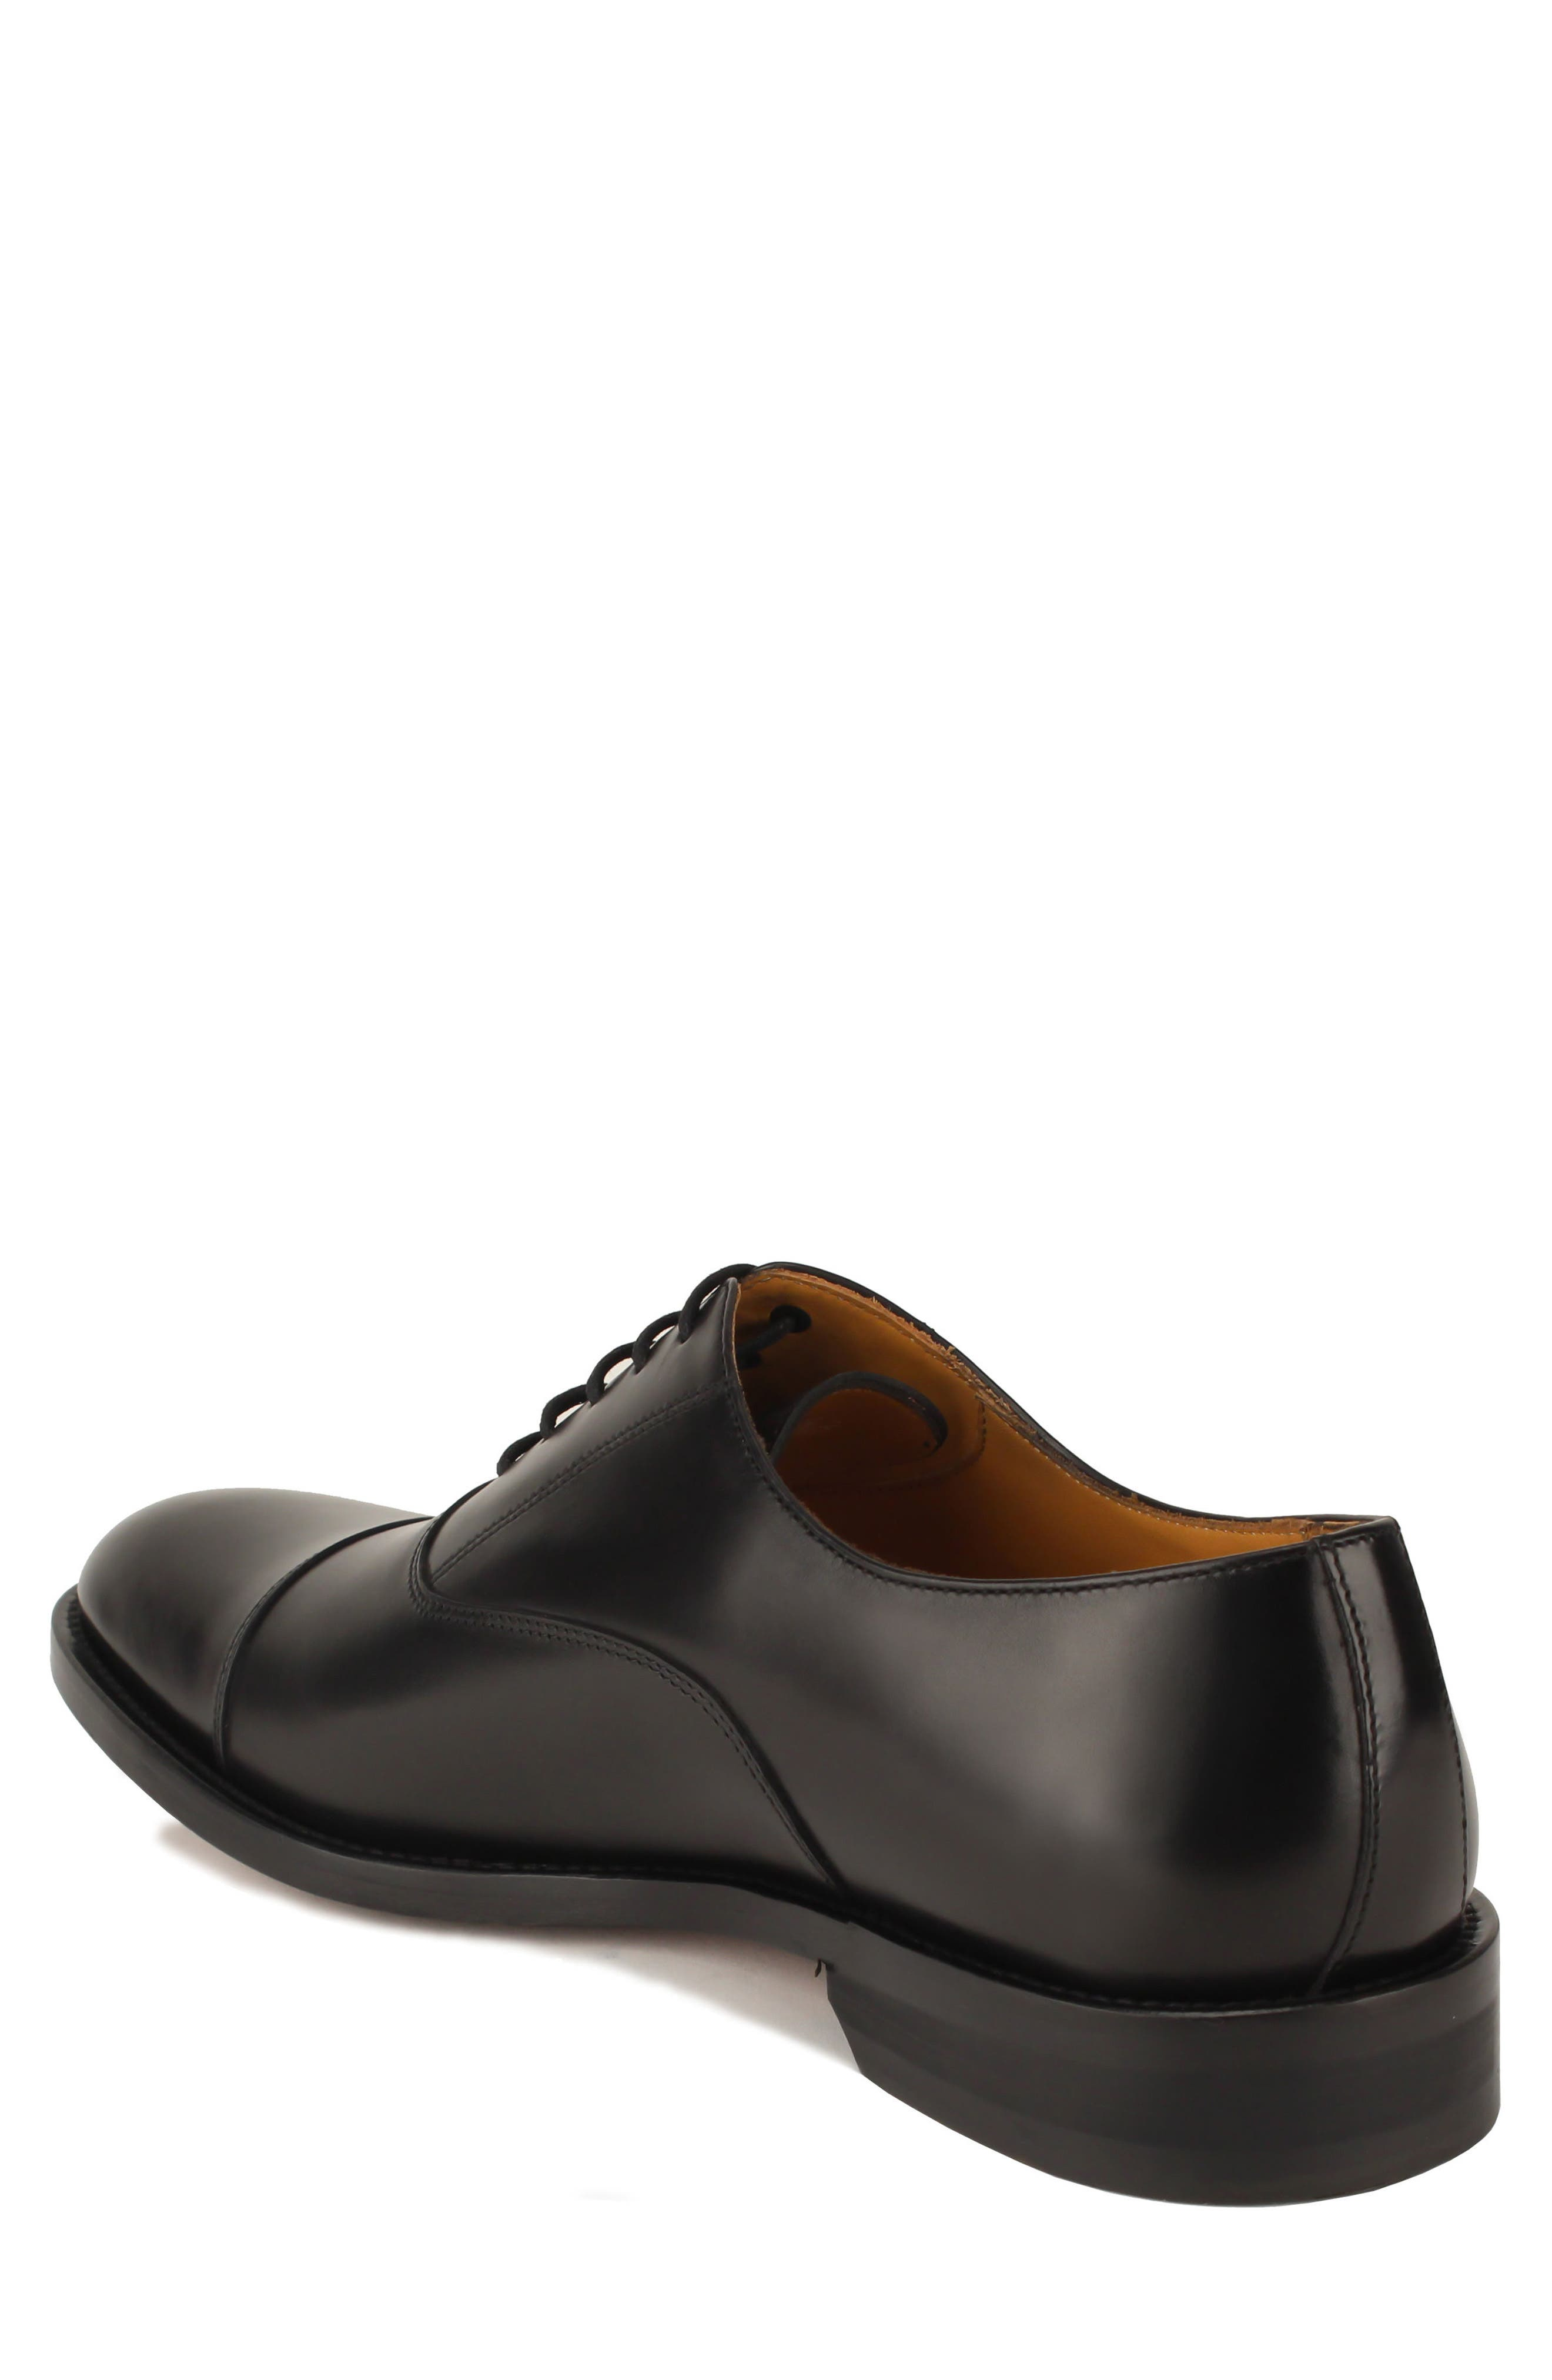 Nathan Cap Toe Oxford,                             Alternate thumbnail 2, color,                             Black Leather